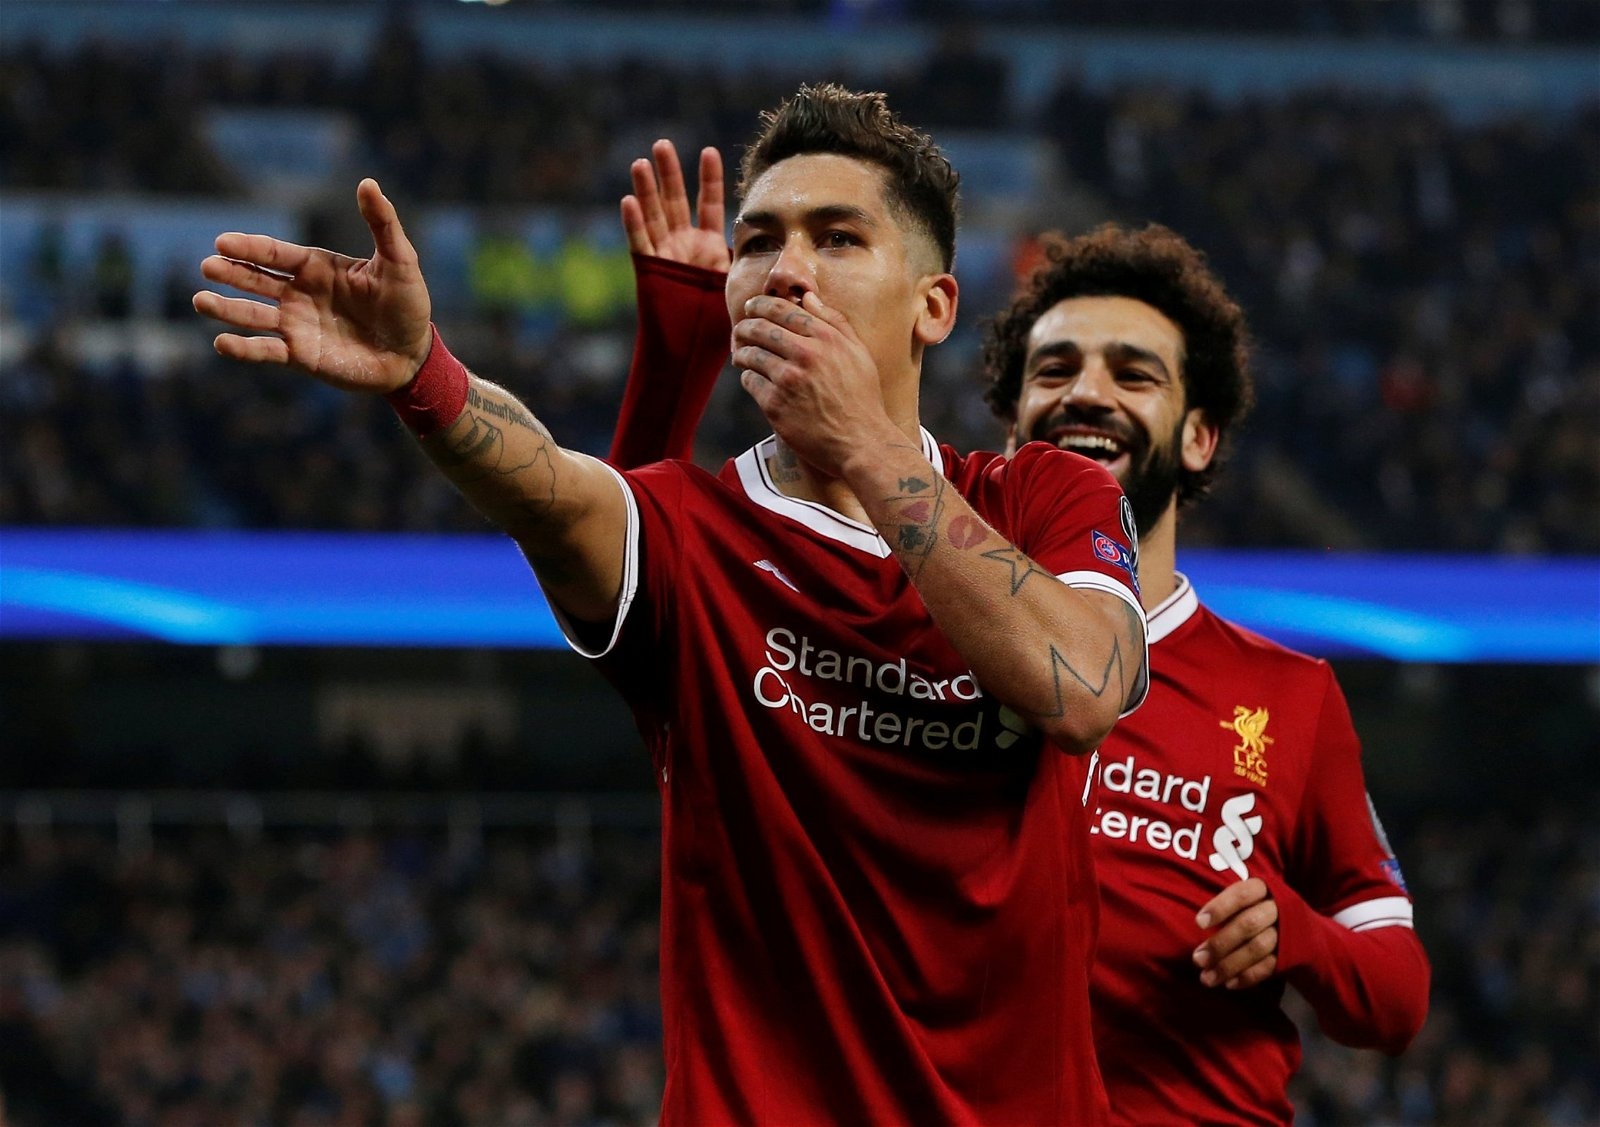 Liverpool's Roberto Firmino celebrates with Mohamed Salah after scoring against Manchester City